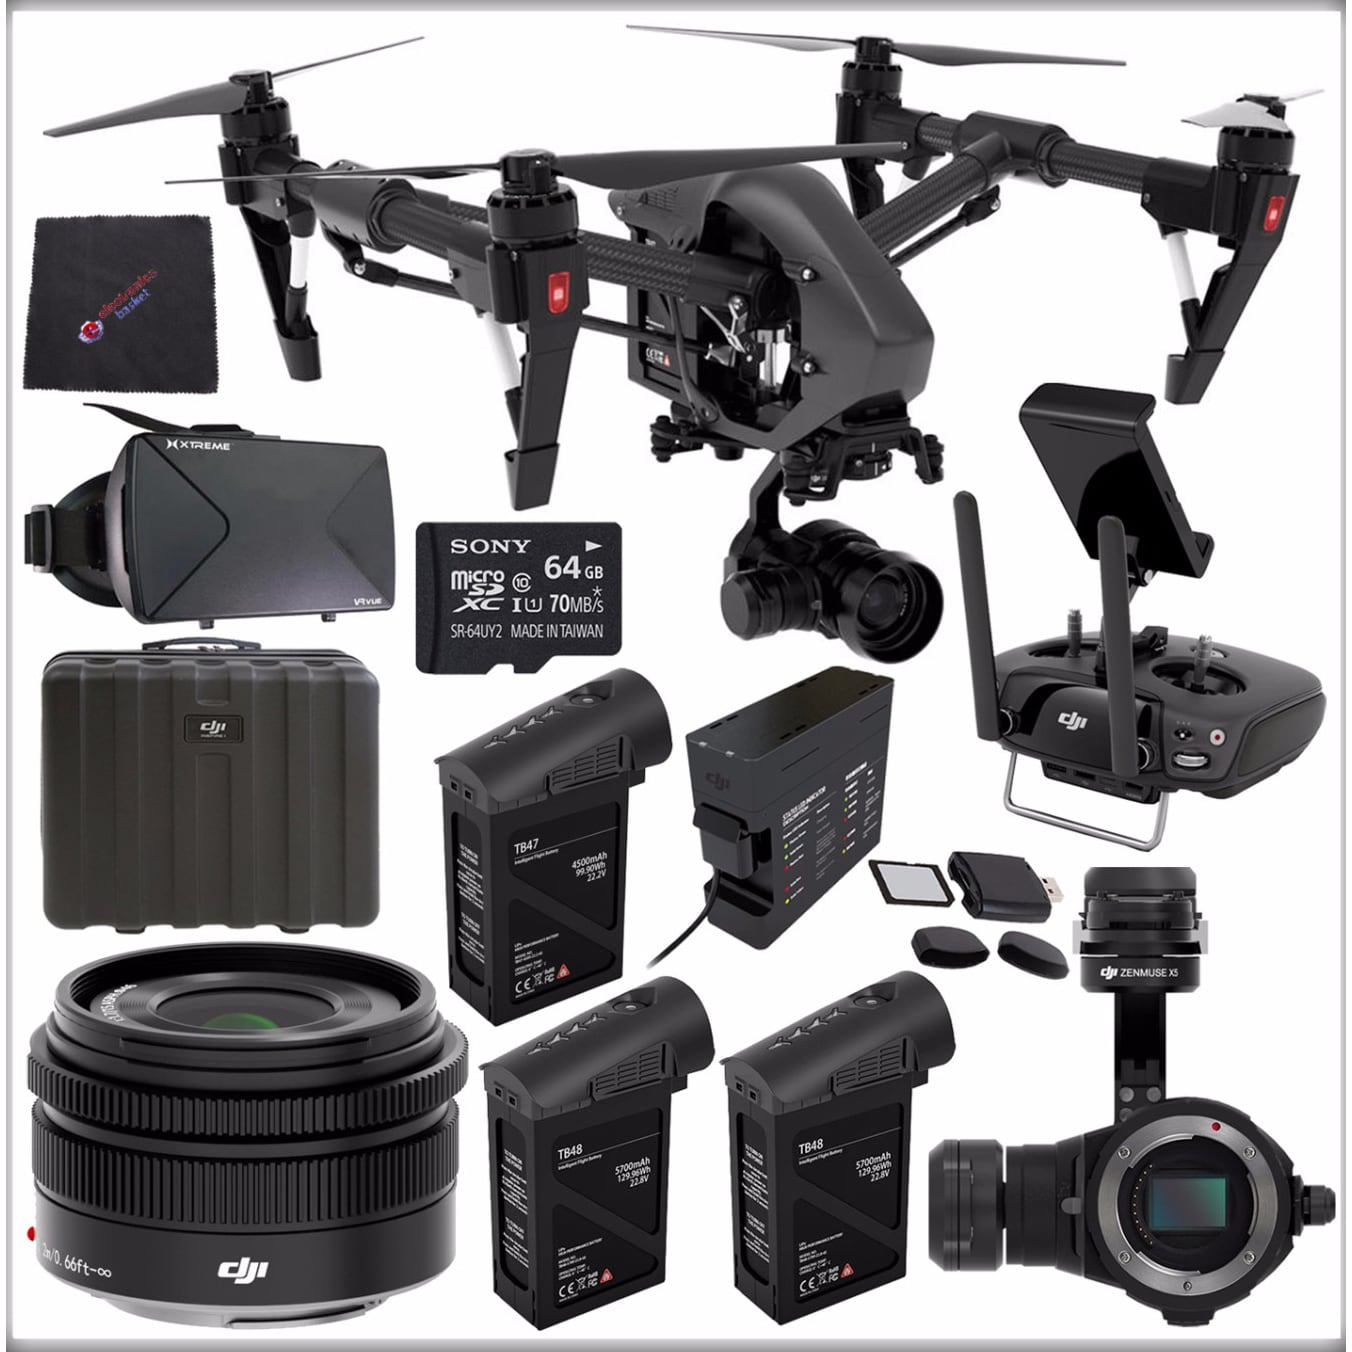 Shop Dji Inspire 1 V20 Pro Black Edition Quadcopter Bundle Ships Zenmuse X5 4k 3 Axis Professional To Canada 15315257